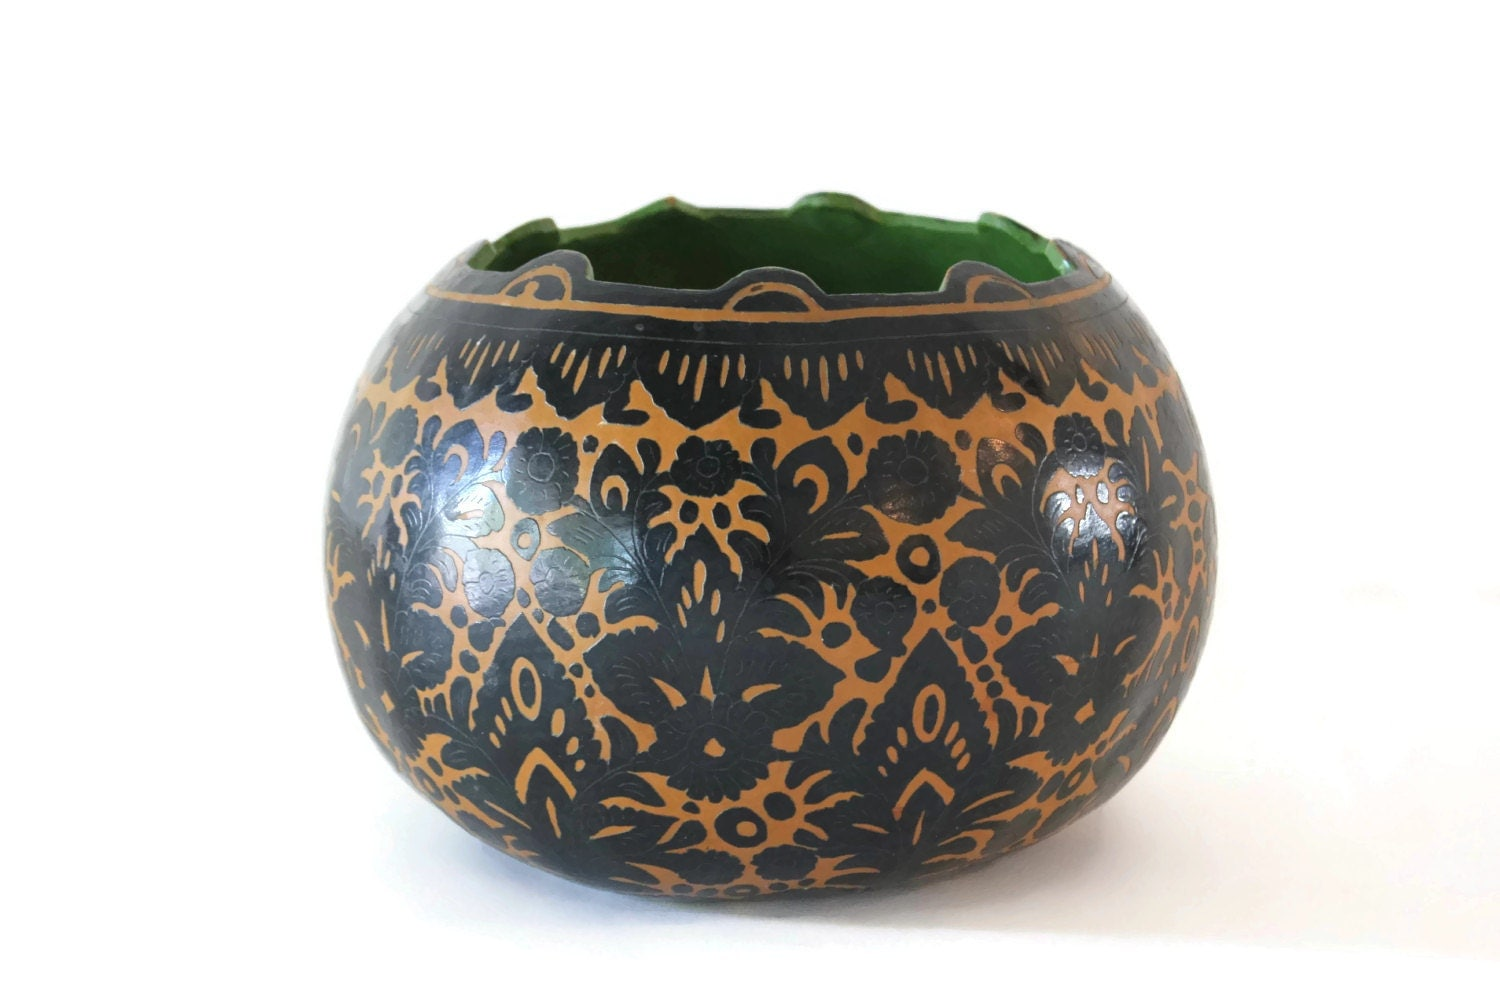 Carved And Painted Gourd Bowl With Scrolled Floral Design